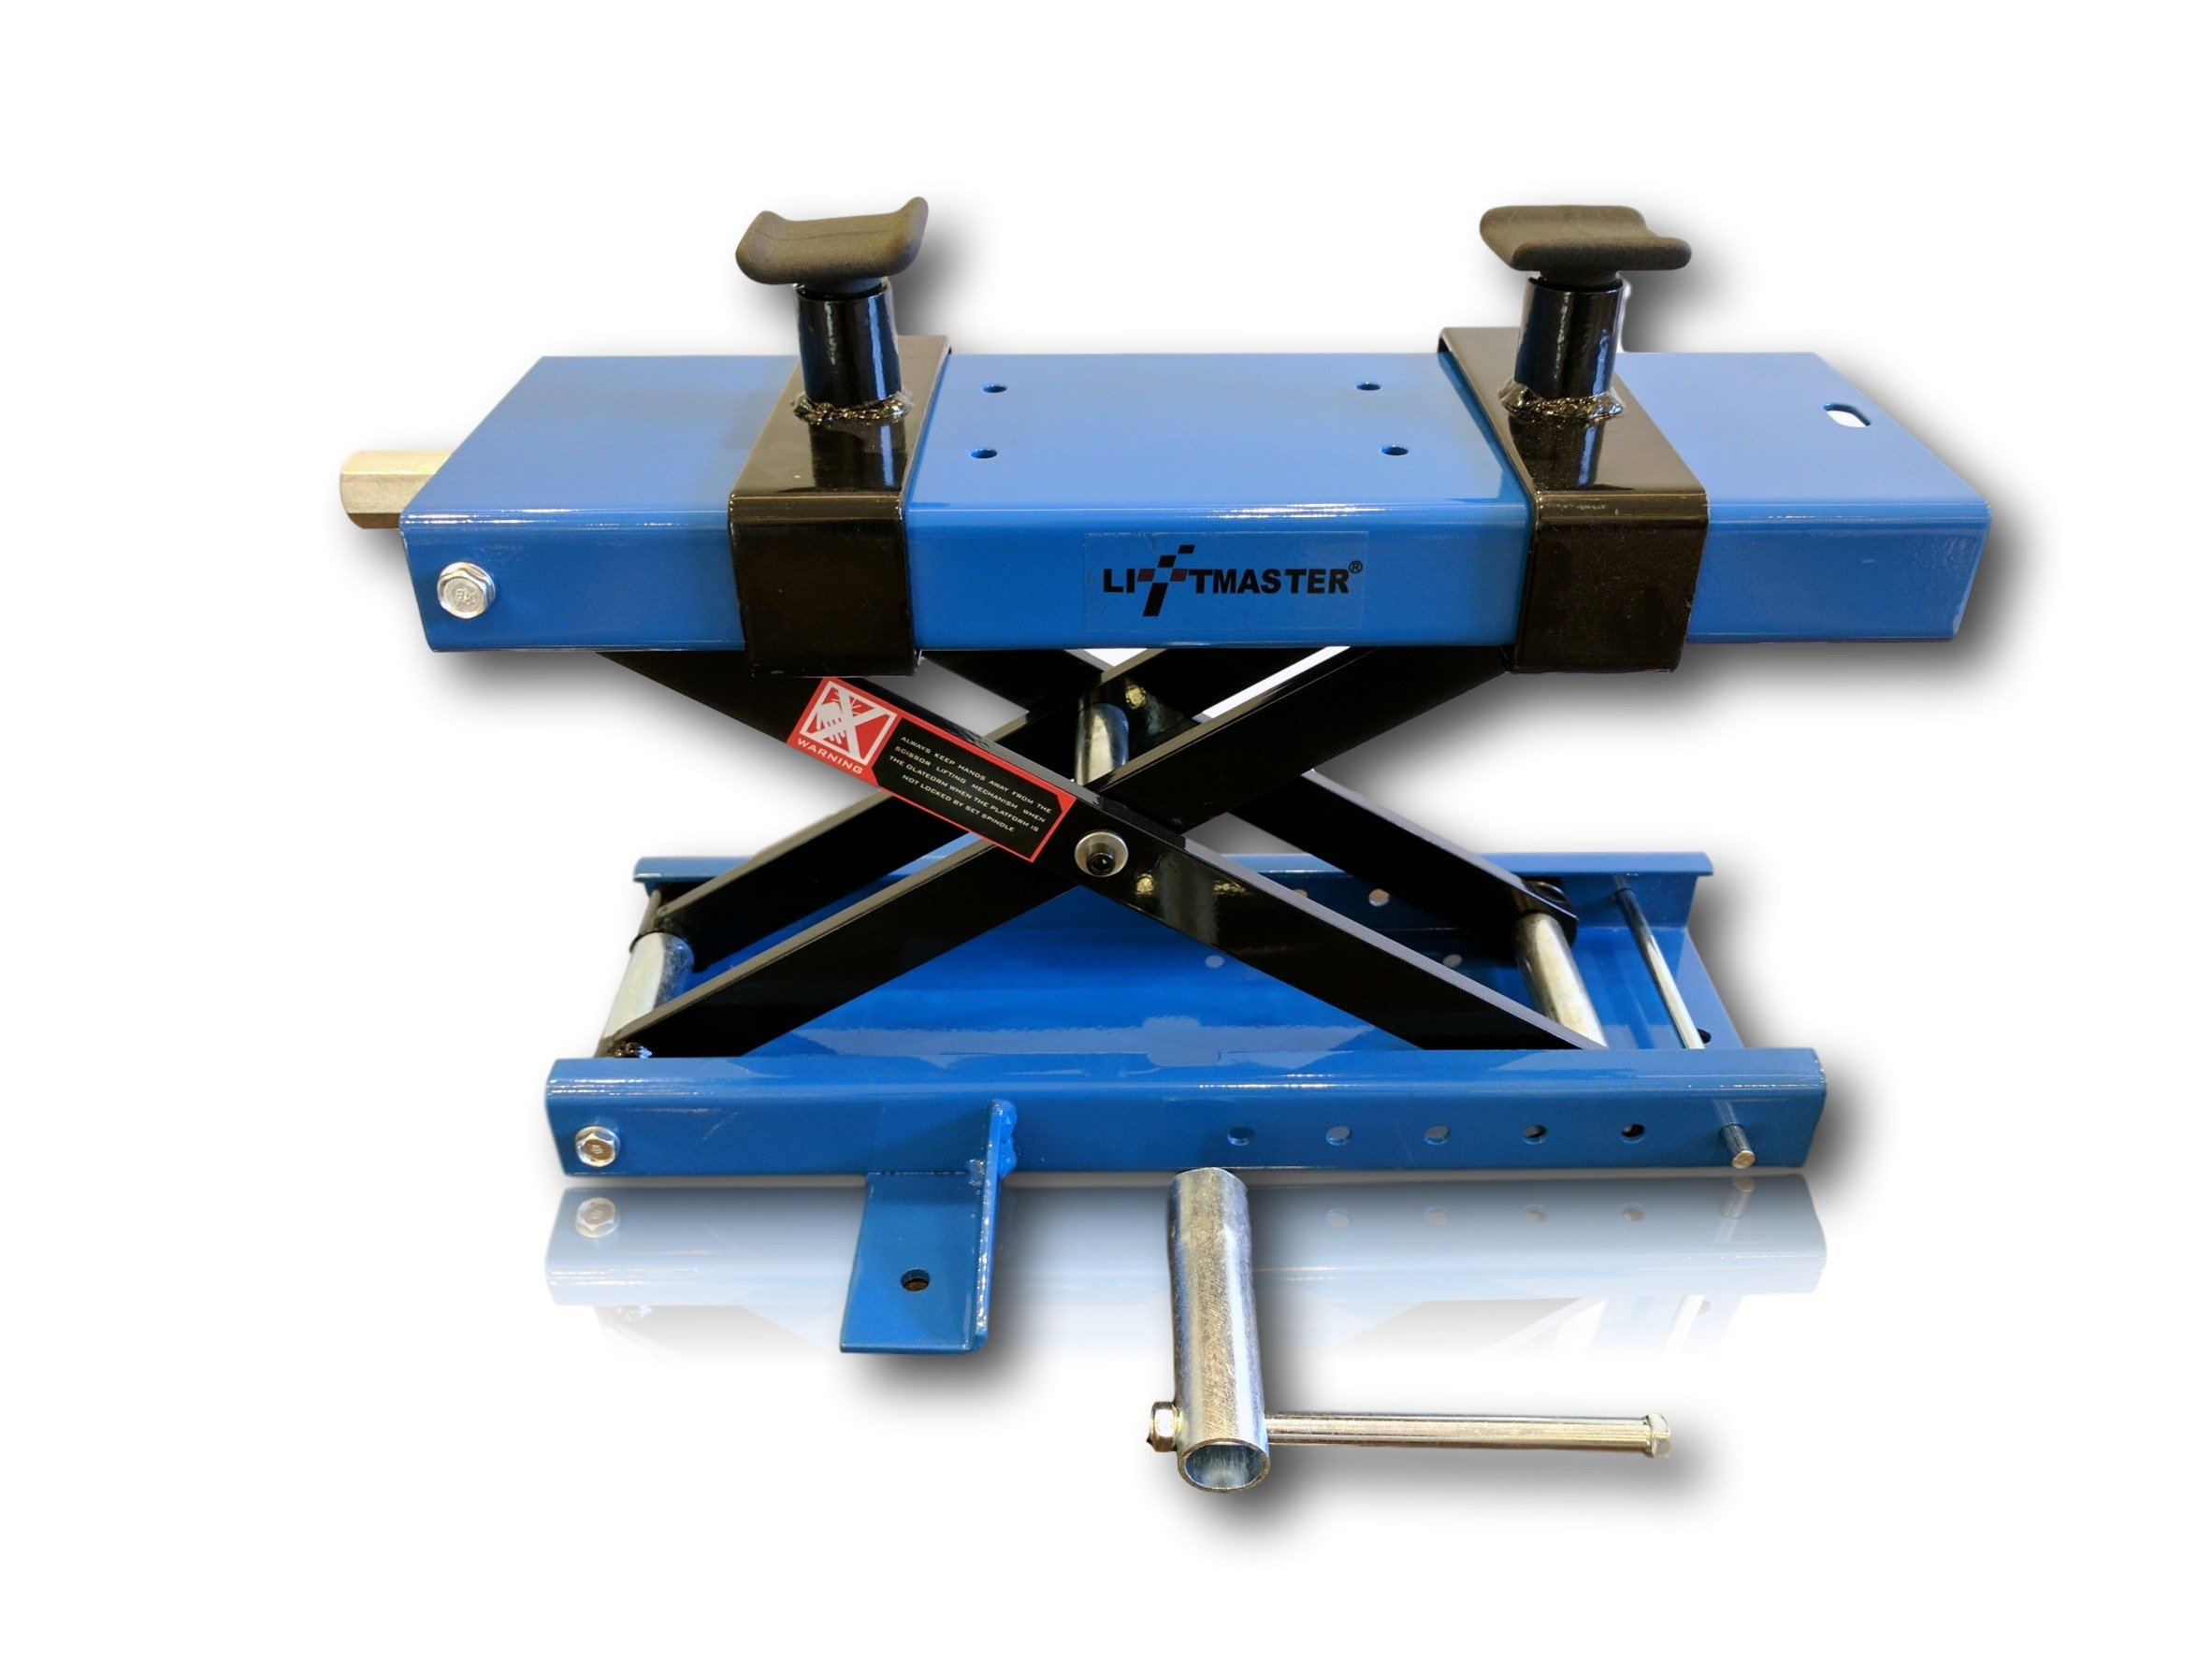 LiftMaster 1100 LB Motorcycle Center Scissor Lift Jack with Safety Pin Hoist Stand Bikes ATVs by LiftMaster (Image #2)